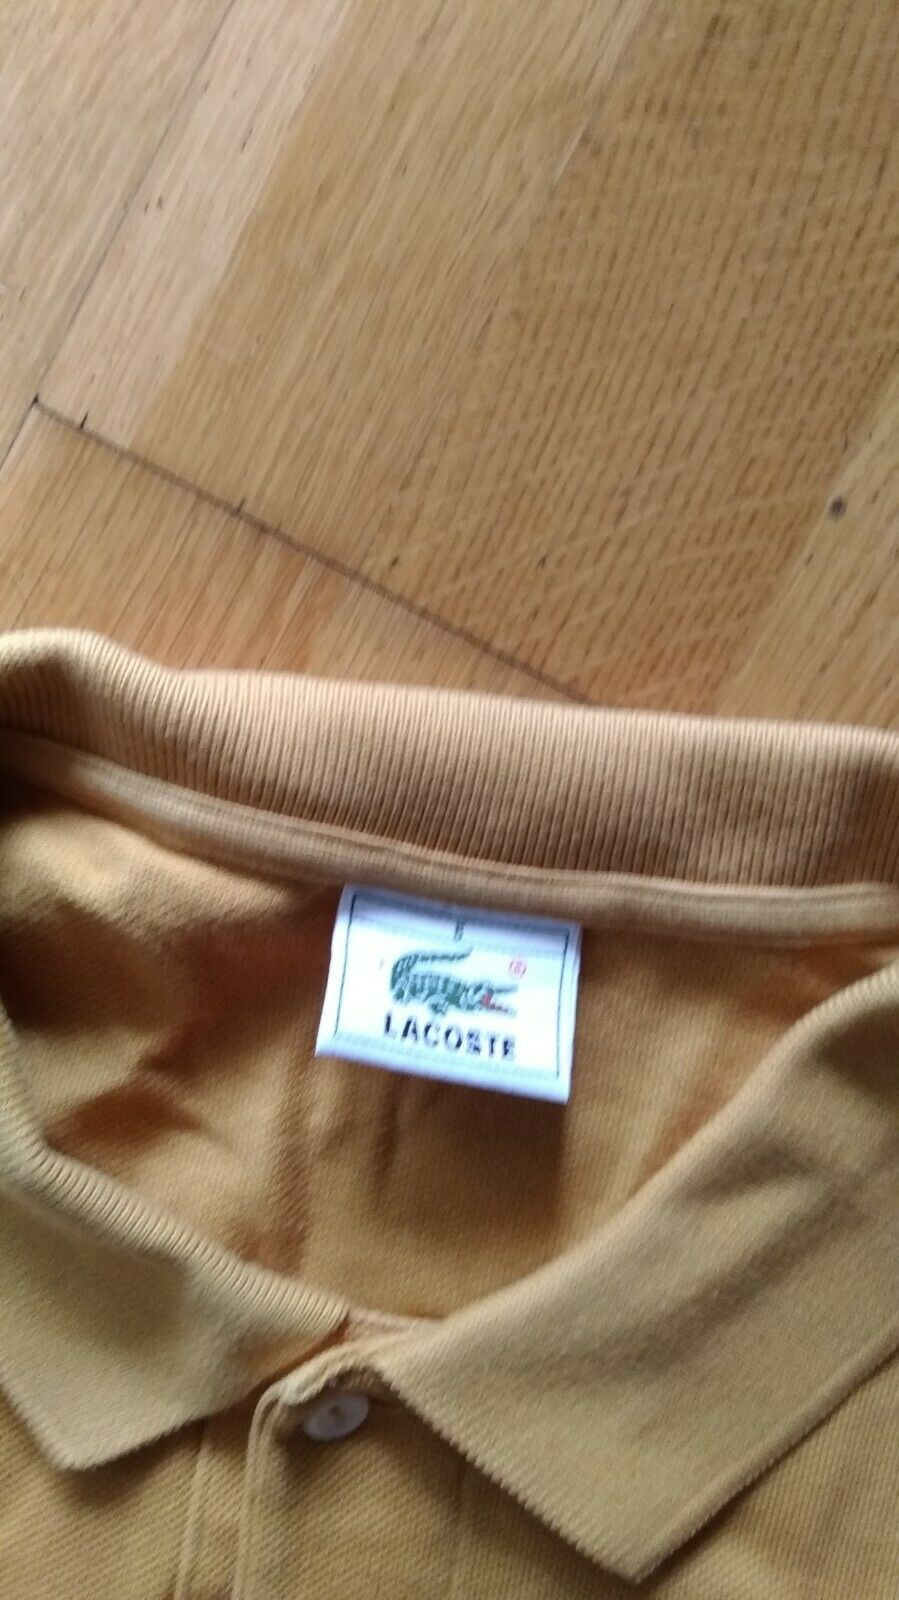 Beau polo lacoste  moutarde manches longues t6